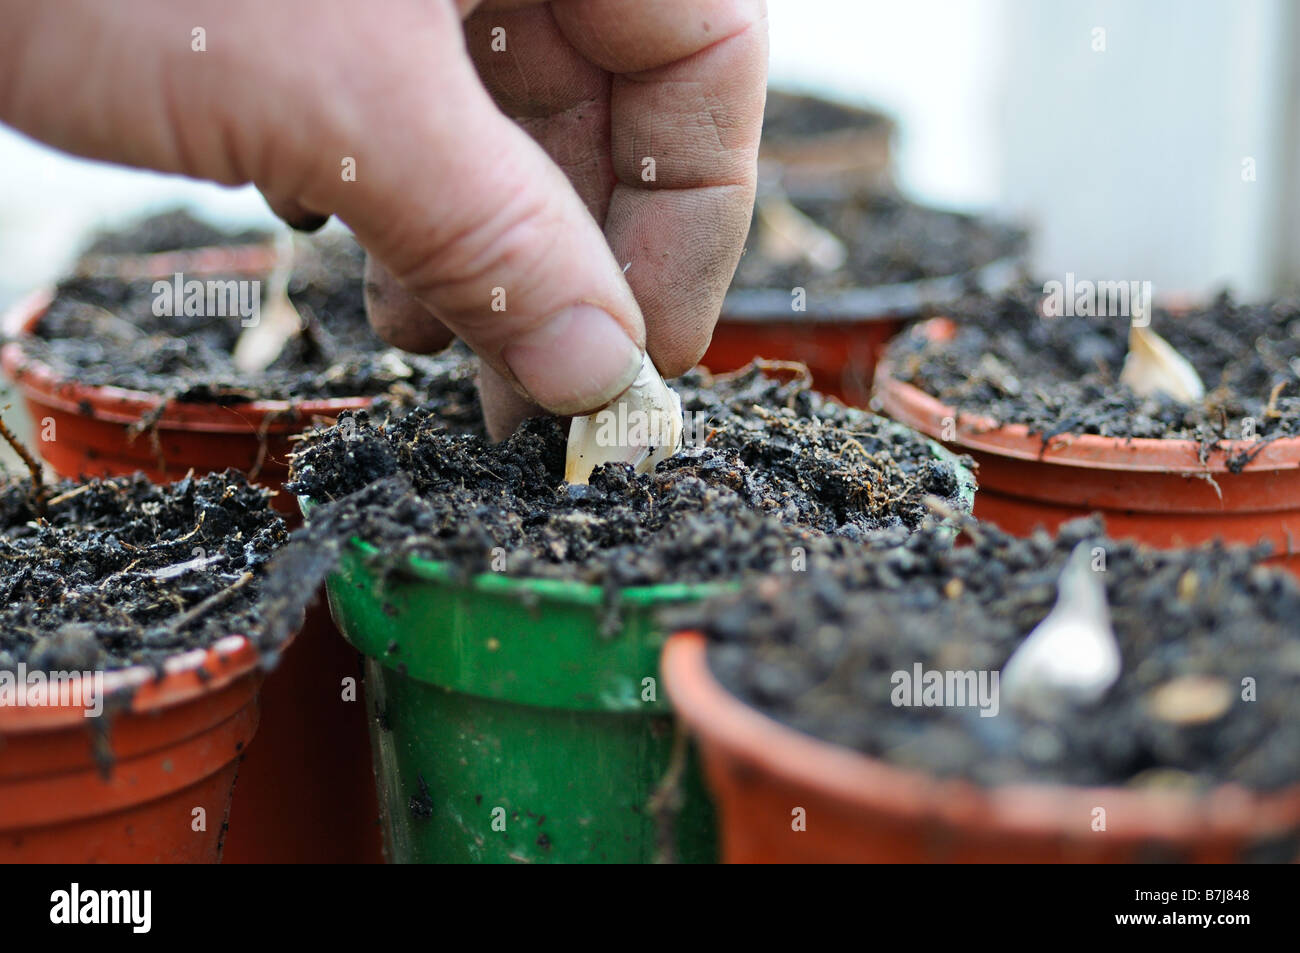 Gardeners hand planting garlic cloves in pots on greenhouse bench January - Stock Image